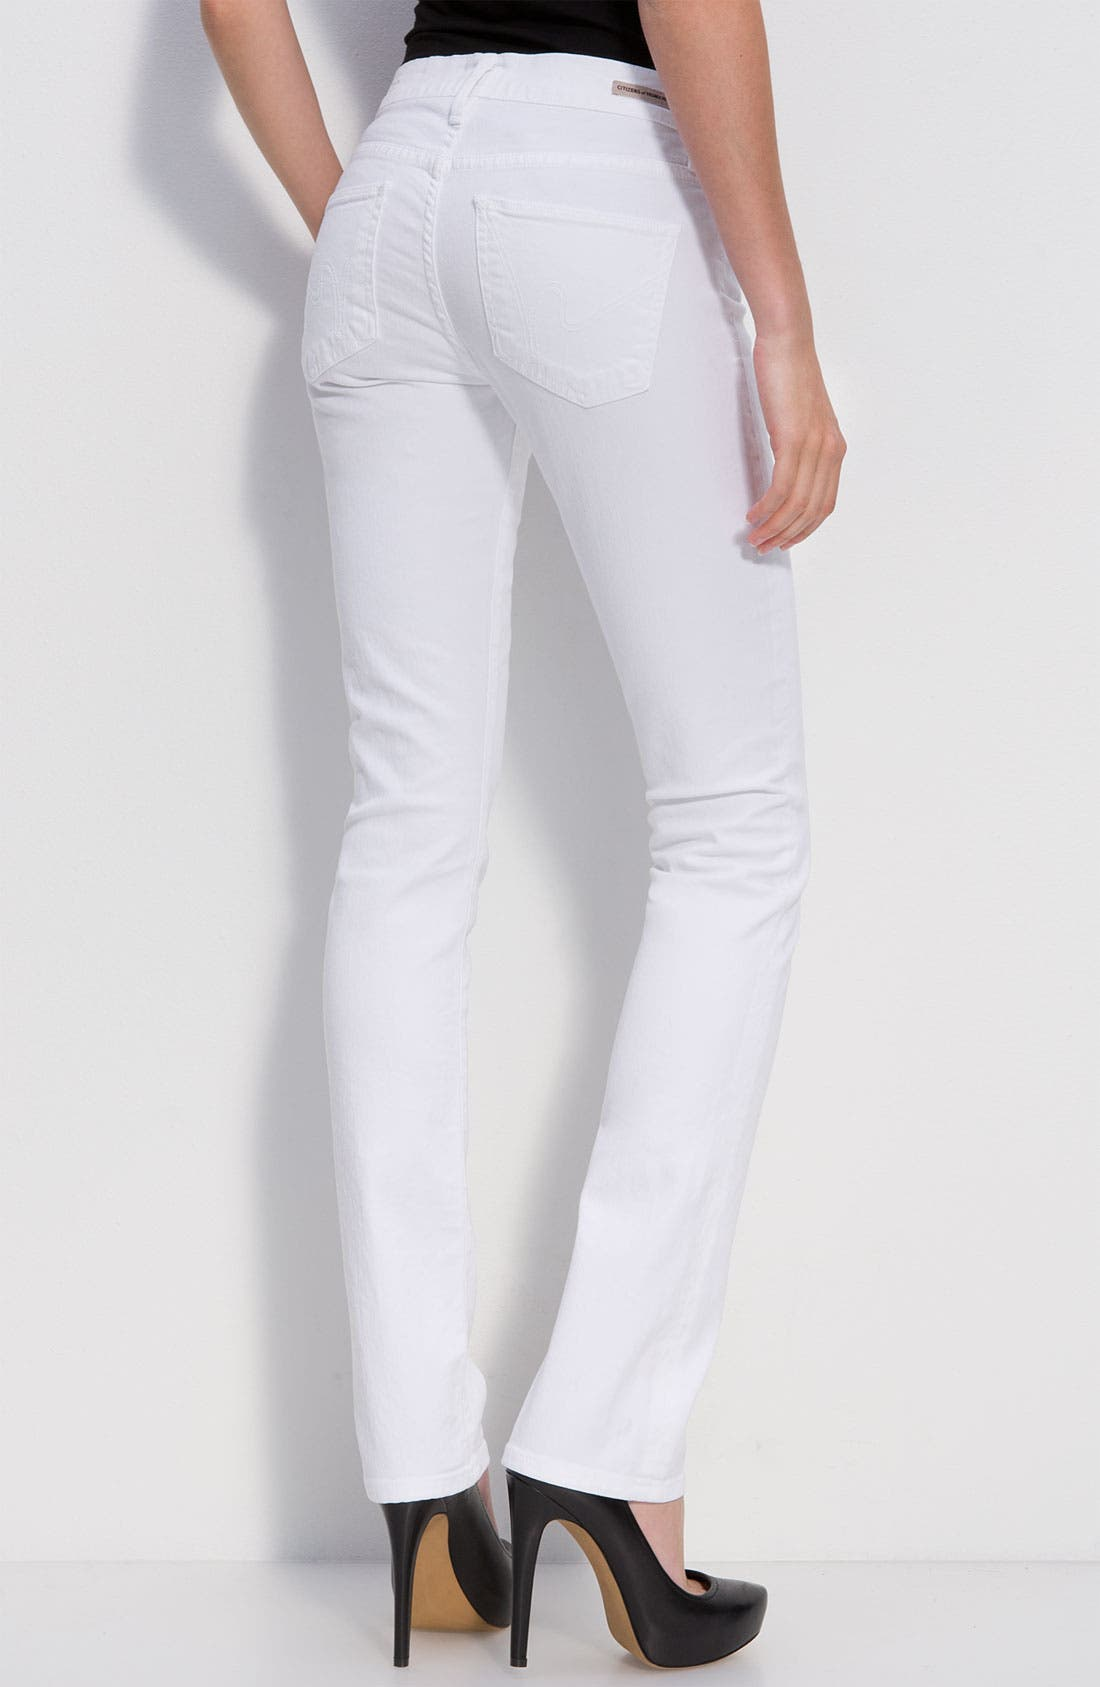 Alternate Image 1 Selected - Citizens of Humanity 'Elson' Straight Leg Jeans (Santorini Wash)